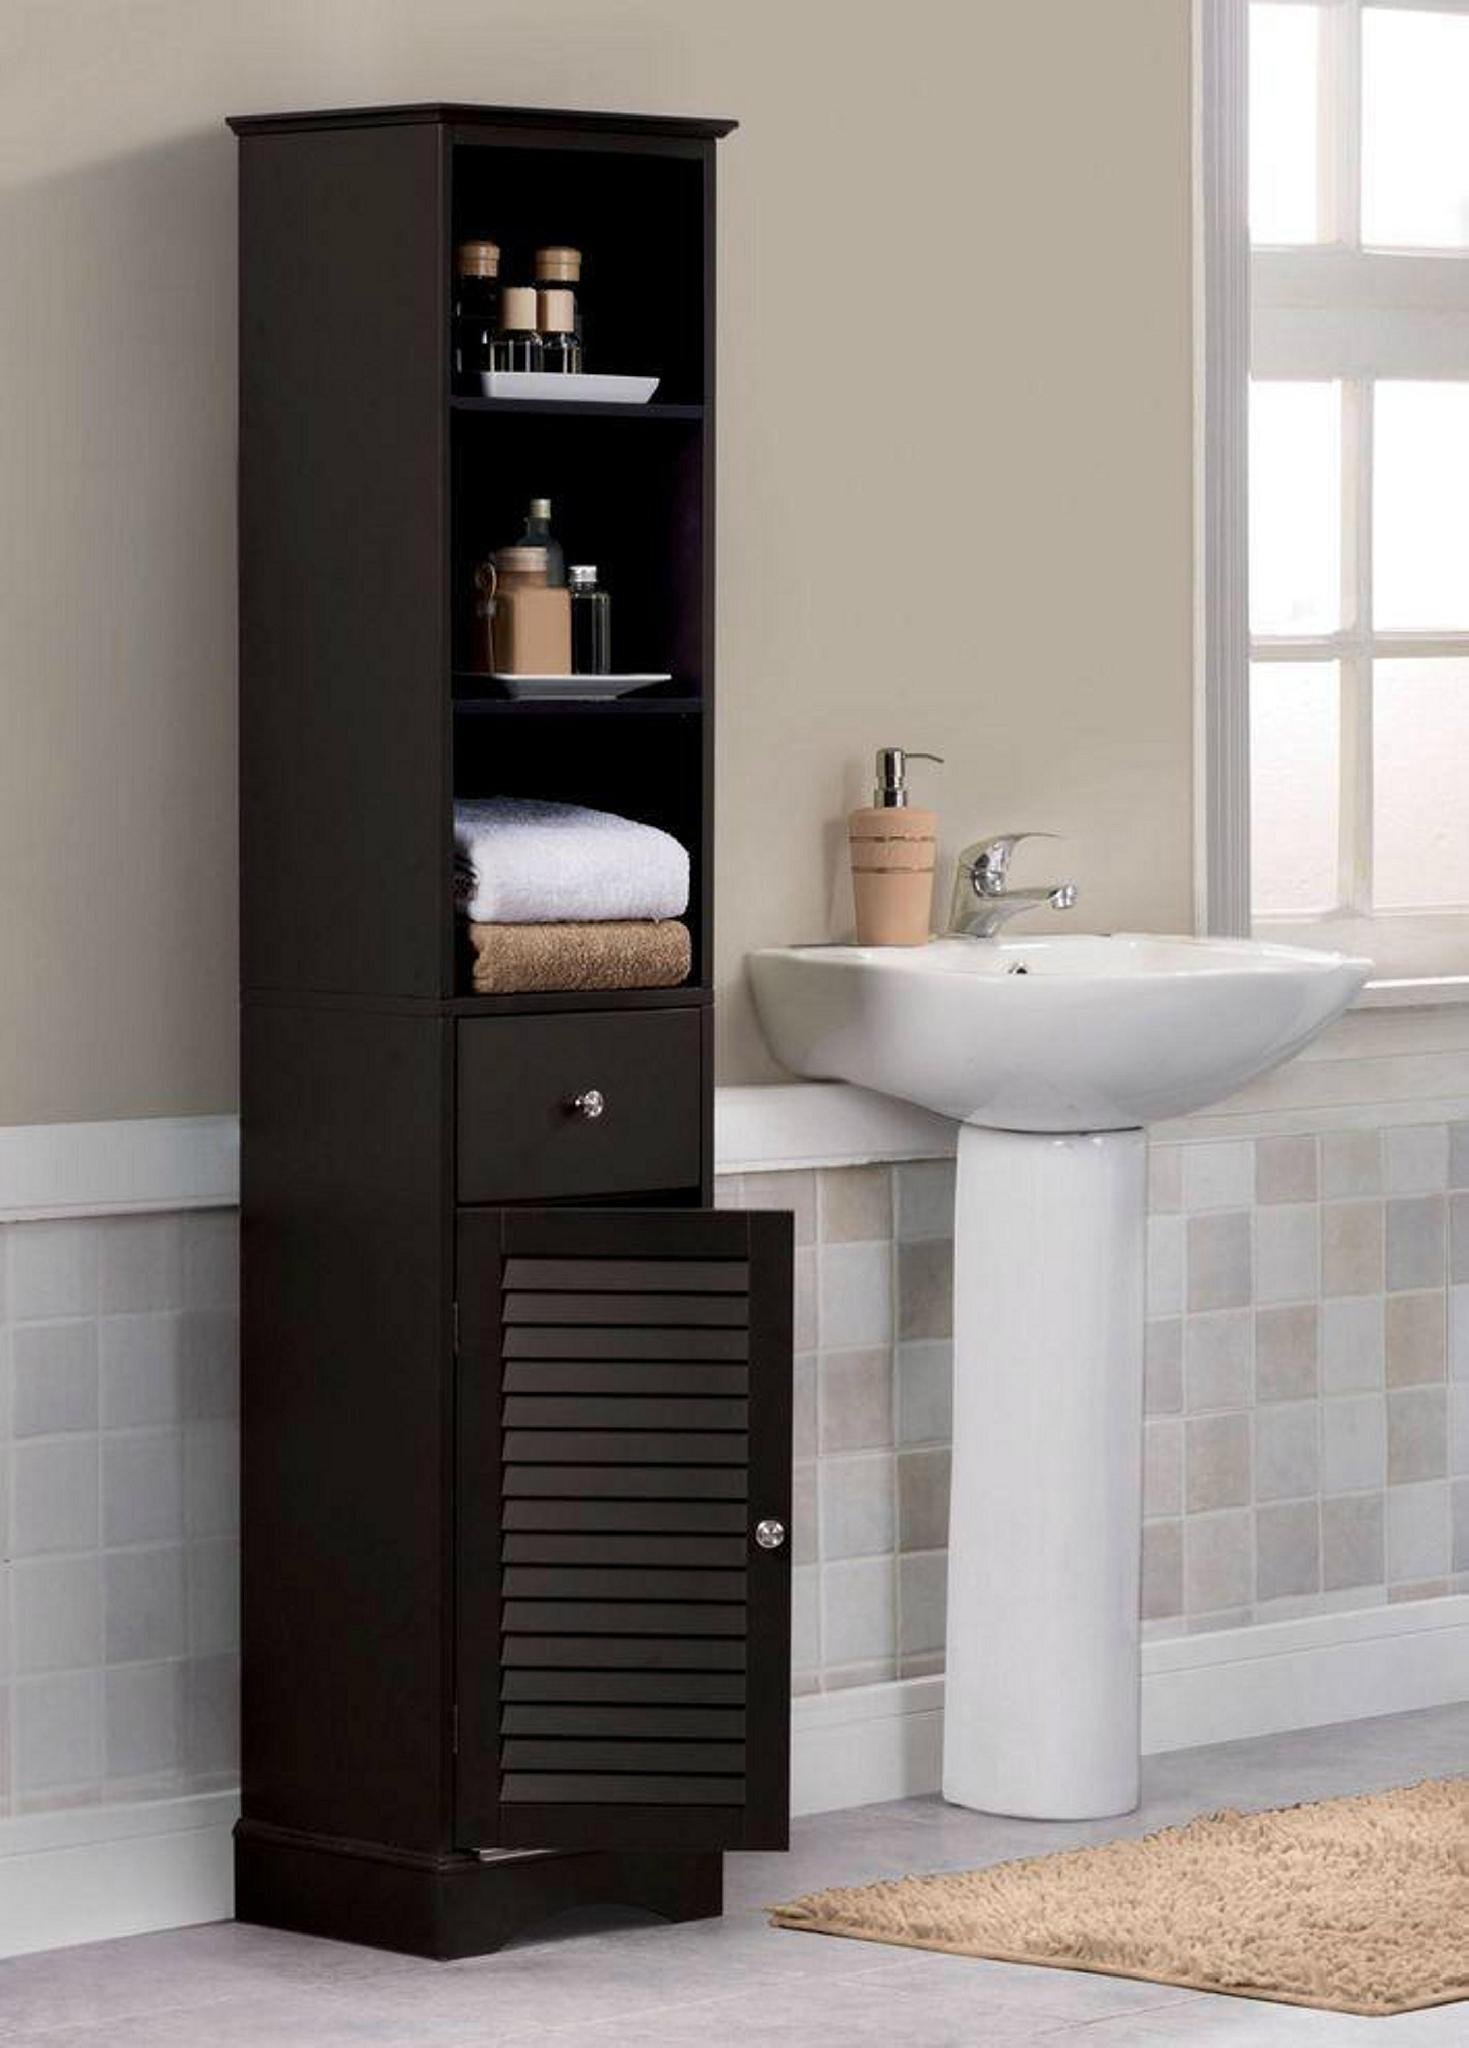 blind door bathroom tall cabinet bathroom shelves over toilet wd 4163 4165 mighty taiwan. Black Bedroom Furniture Sets. Home Design Ideas